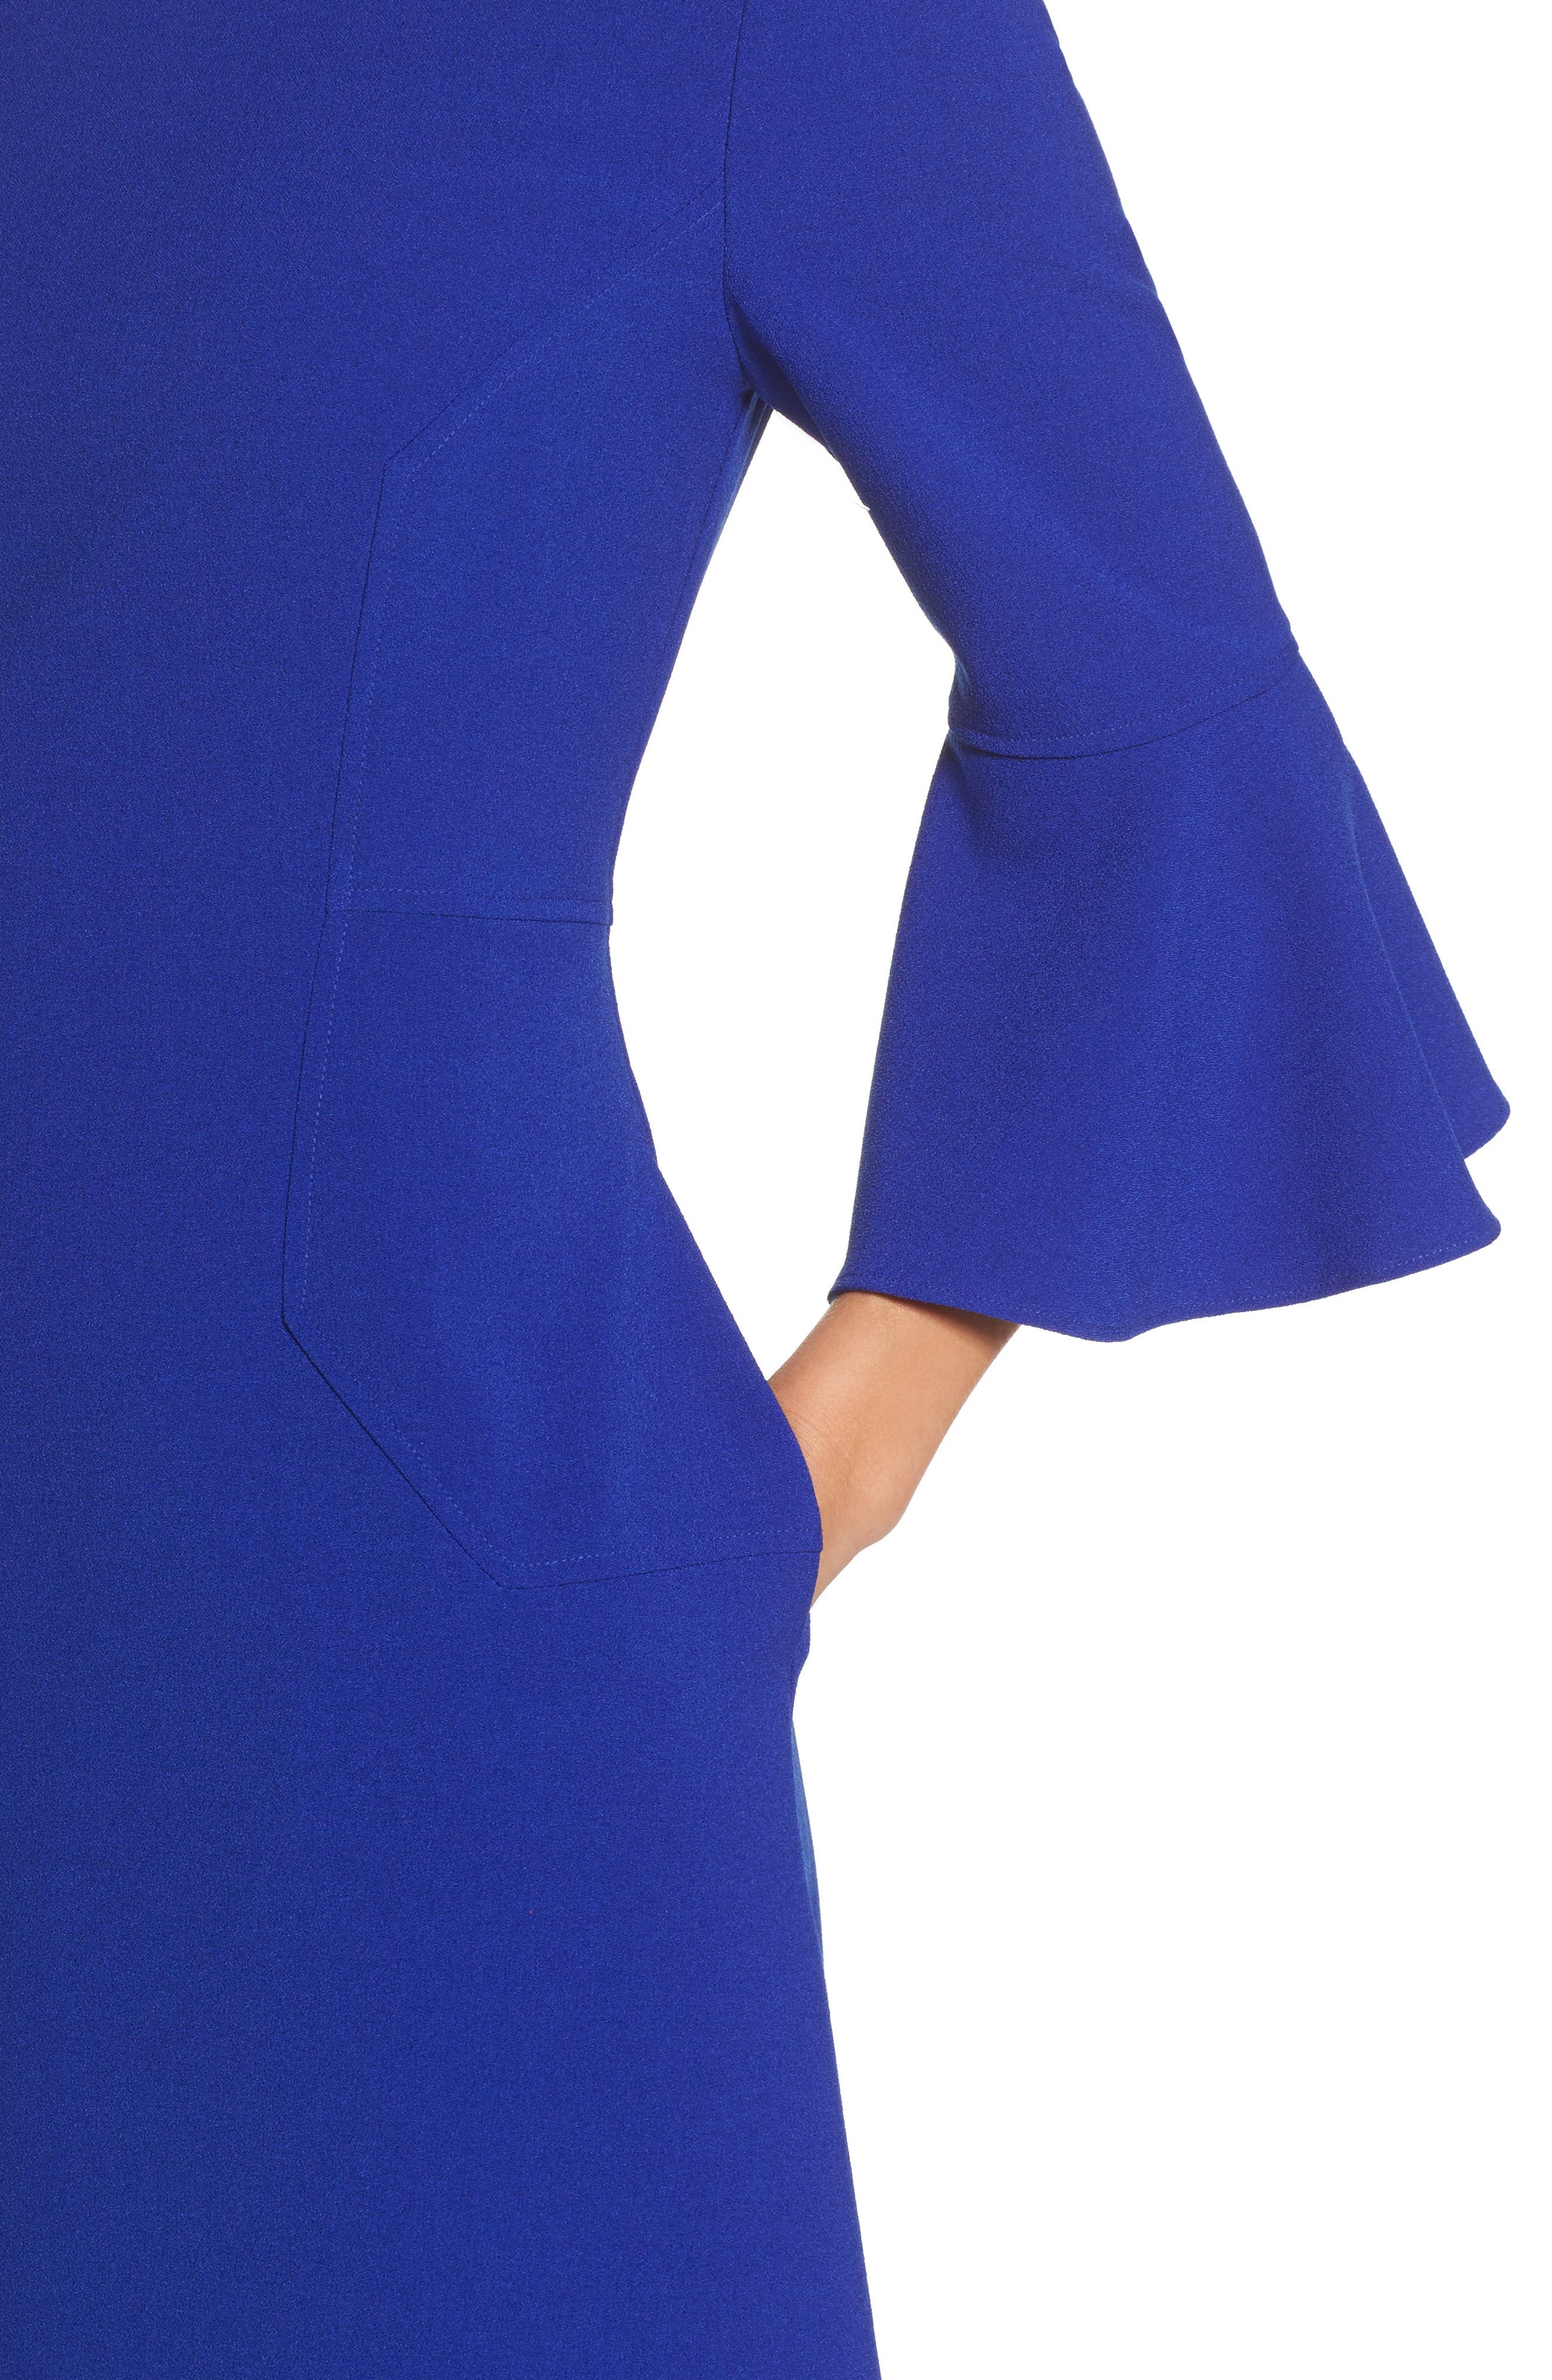 Bell Sleeve Dress,                             Alternate thumbnail 4, color,                             430